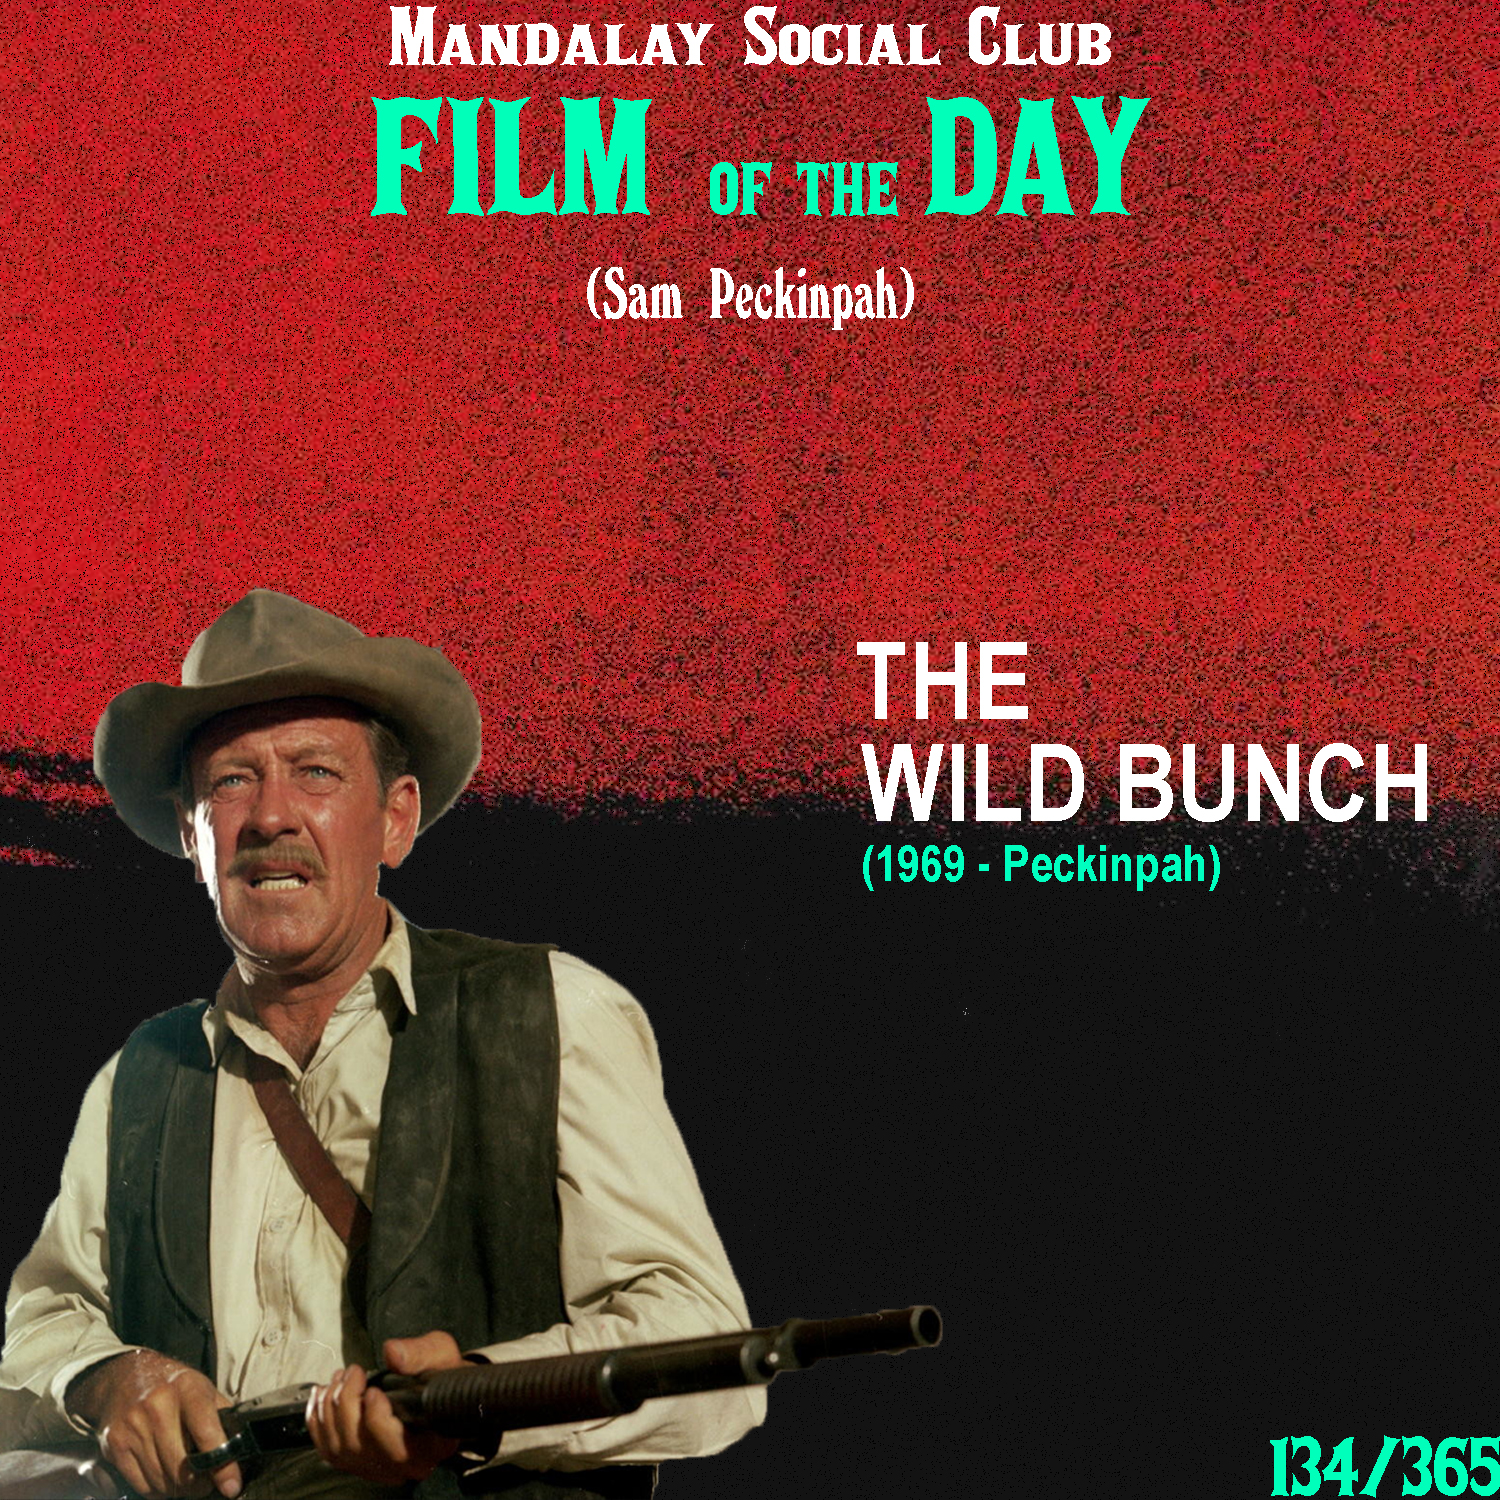 THE WILD BUNCH     (dir. Sam Peckinpah)    The Wild Brunch  shocked audiences across the world and helped launch a promising young director into prominence.  Sam Peckinpah uses  The Wild Bunch  as a monstrous vehicle meant to bid farewell to the end of the traditional Western era. With a pretty big cast,  The Wild Bunch  follows a group of bandits as they attempt to make one final heist. After finding out that the heist was a set-up put together by an old partner, the wild bunch now head down to Mexico as they seek refuge from the strong arm of the law.  Peckinpah highlighted this film with his excessive use of violence and gore to really demonstrate the changing tides the world of cinema was facing. The Western, specifically, was undergoing quite a bit of change as the New Hollywood movement was catching its first strides in the mid to late 60s. Peckinpah responded by symbolically killing off the traditional Western genre, with absolutely no mercy, with his primitive approach to violence in his characters.  As an ode to what once was, Peckinpah set a standard with  The Wild Bunch  that not only garnered him the nickname 'Bloody Sam', but also helped shape the revisionist approach to genre from there on out.    5/5     WATCH: Netflix